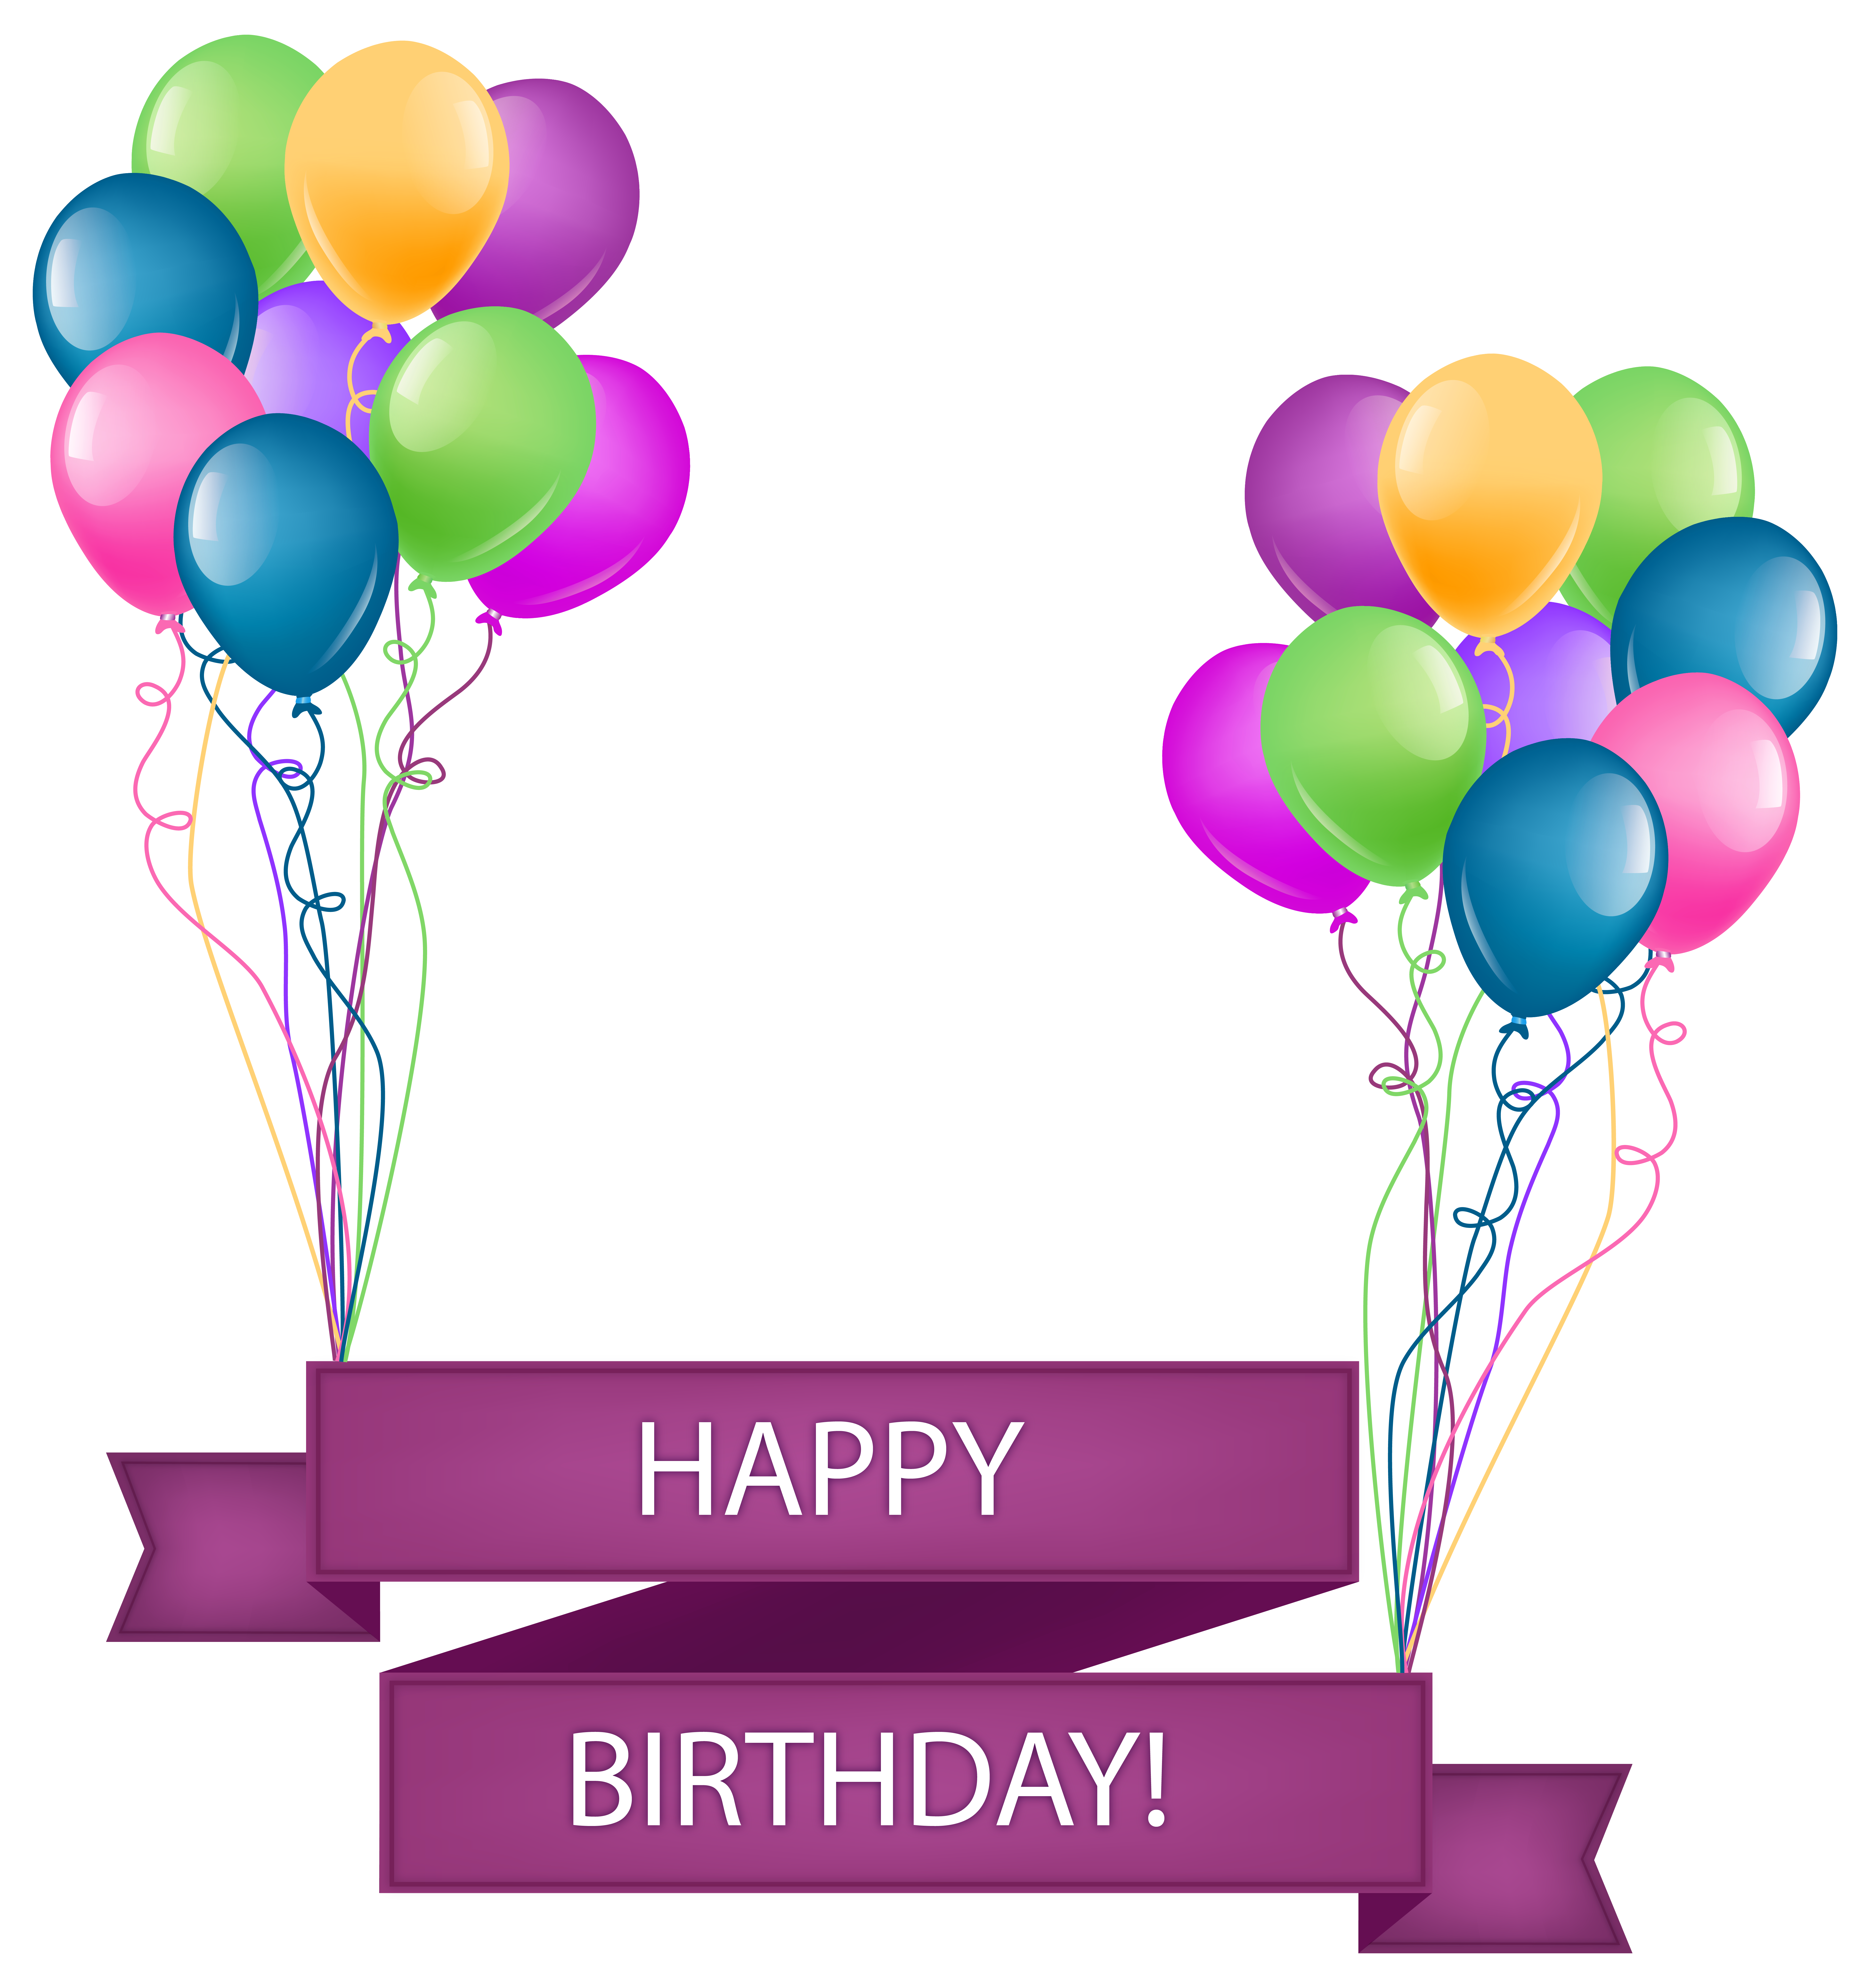 Clipart png transparent vector royalty free stock Happy Birthday Banner with Balloons Transparent PNG Clip Art Image vector royalty free stock